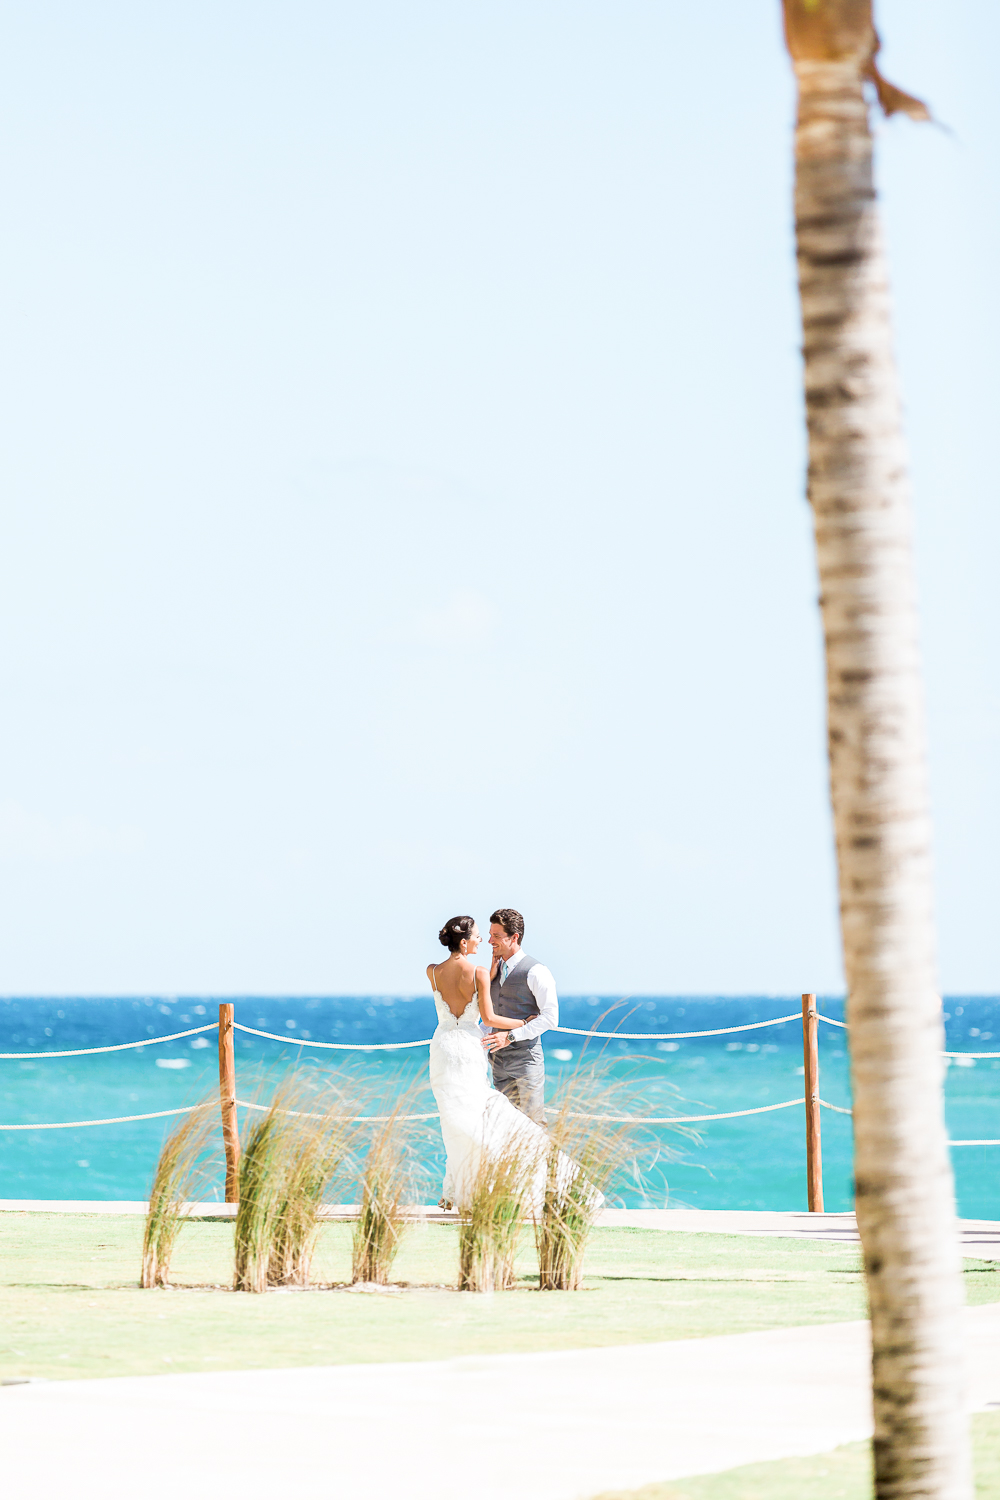 destination wedding in cancun, mexico with bride and groom romantic photos at the beach